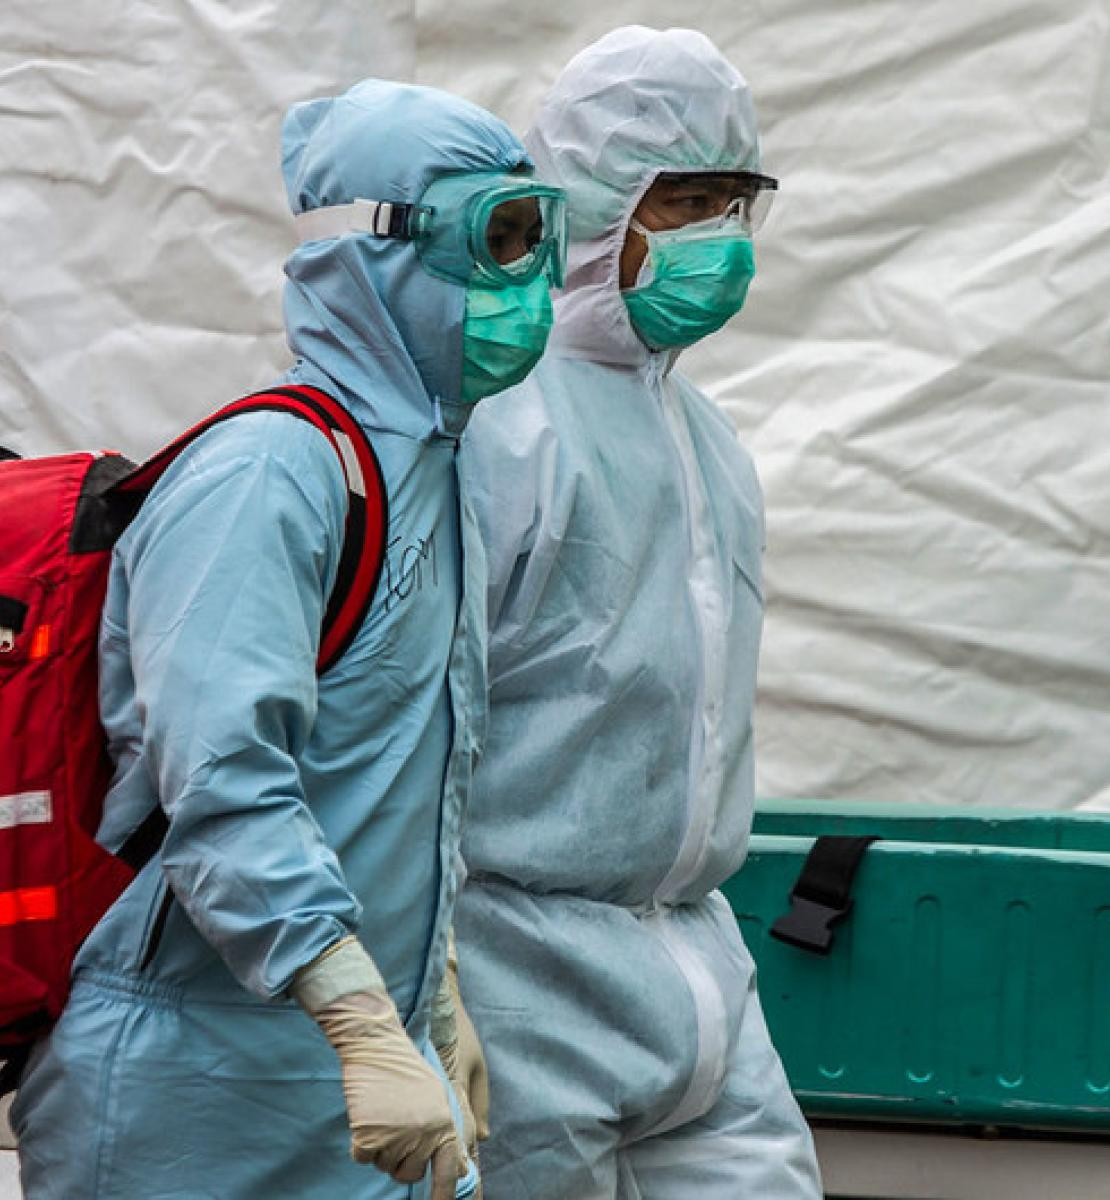 Two health care workers in full body medical gear and face masks walk with a large red backpack.